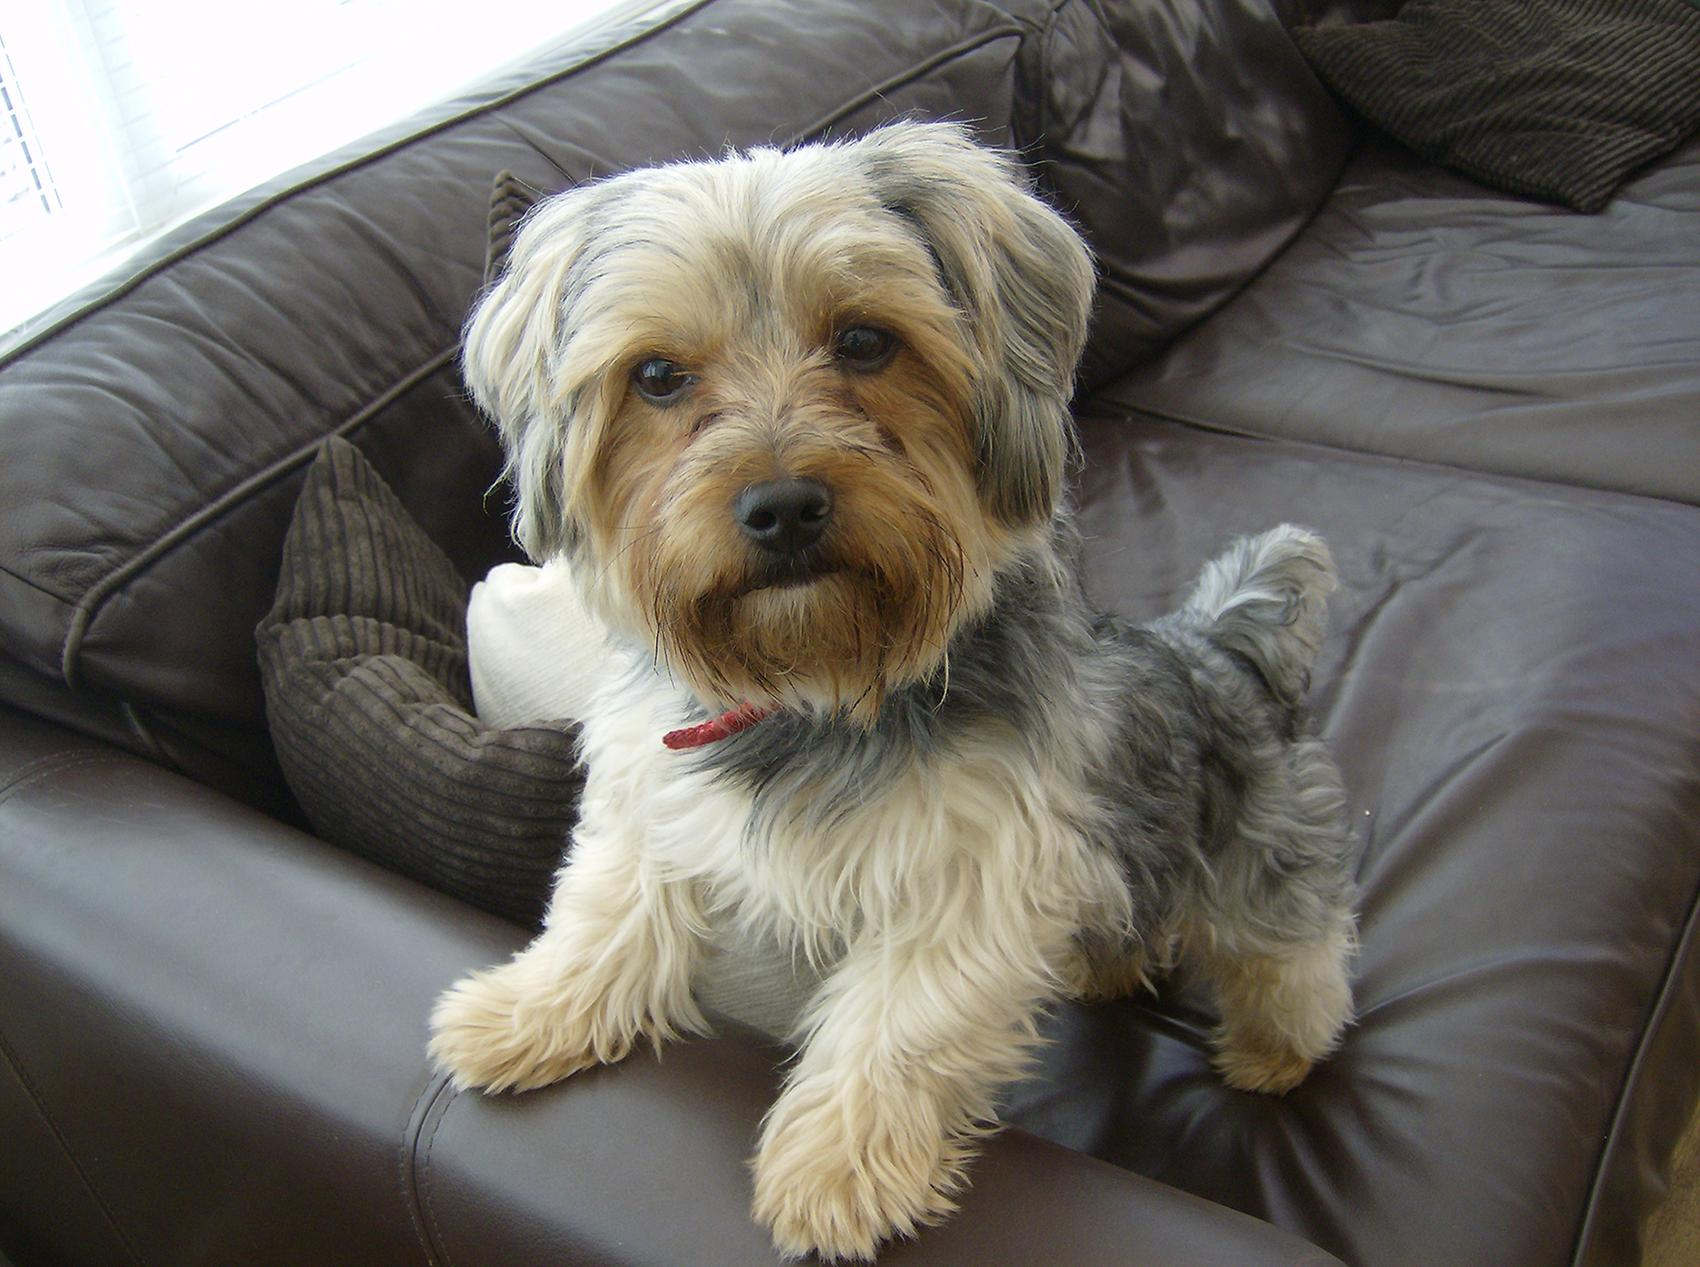 Nearly 9 percent of reported complaints about online pet scams involved Yorkshire terriers. (George2001hi / Wikipedia)